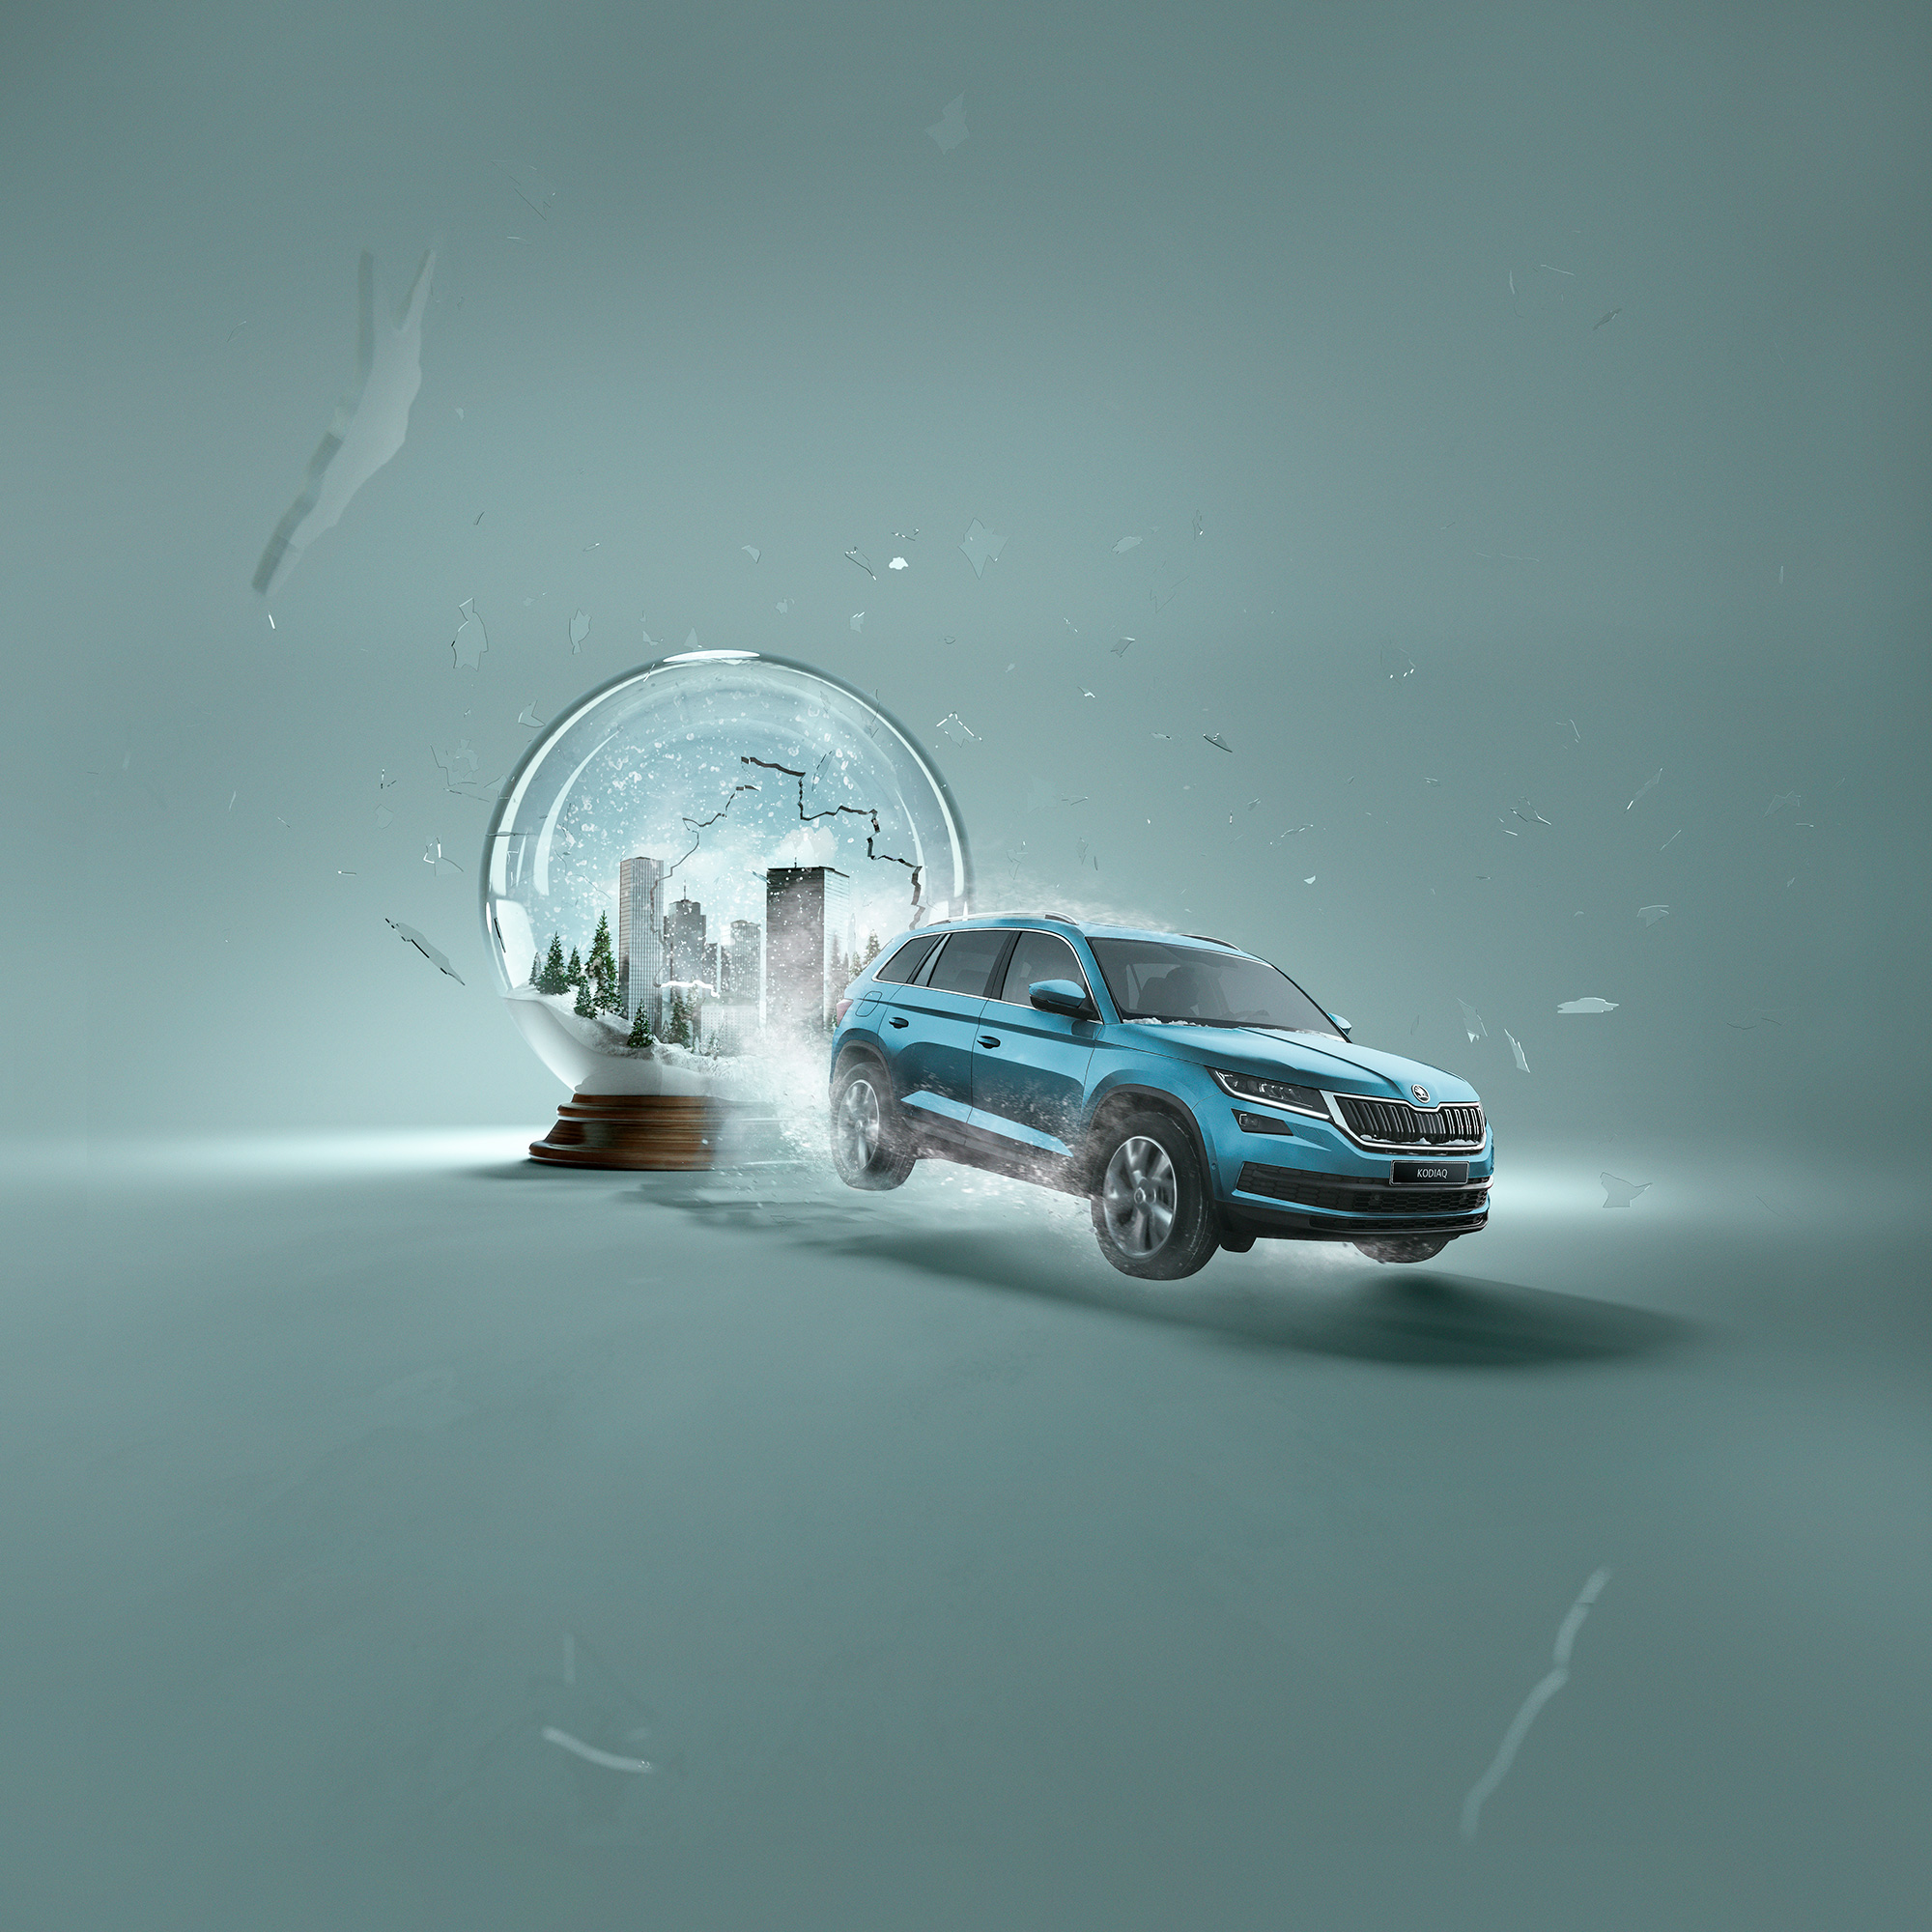 Claudio_errico_digital_artist_art_cgi_cg_3d_lighting_photography_integration_art_direction_mirror__skoda_winter_process3